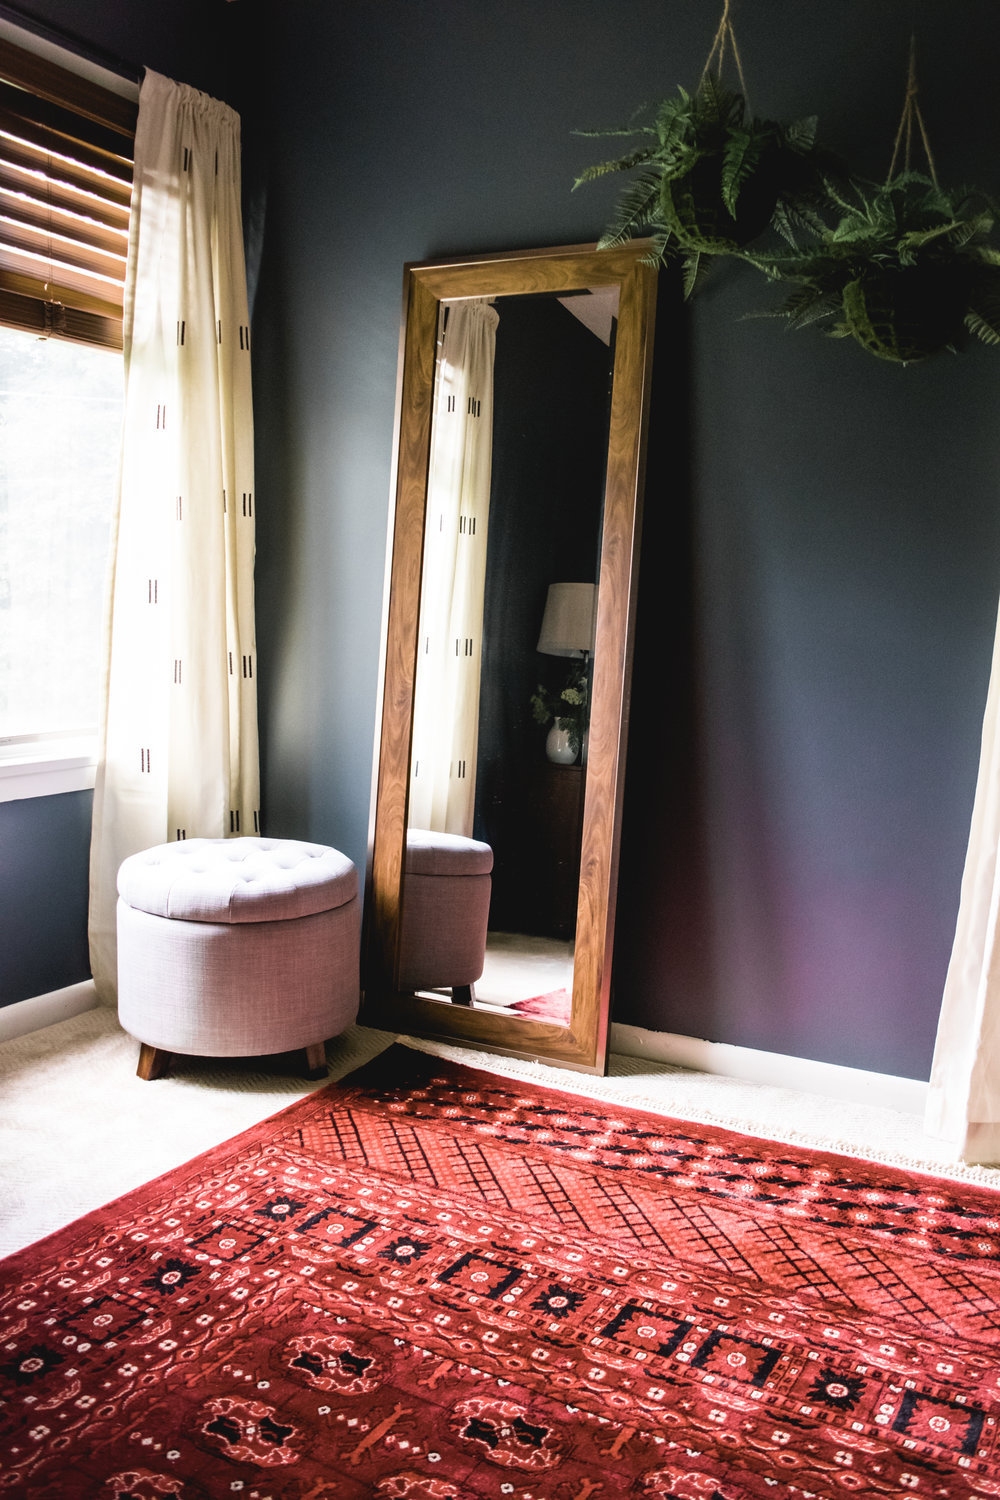 dark moody bedroom design | sherwin williams grays harbor, antique metal bed, affordable persian rug, red persian rug, leaning floor mirror, hanging ferns